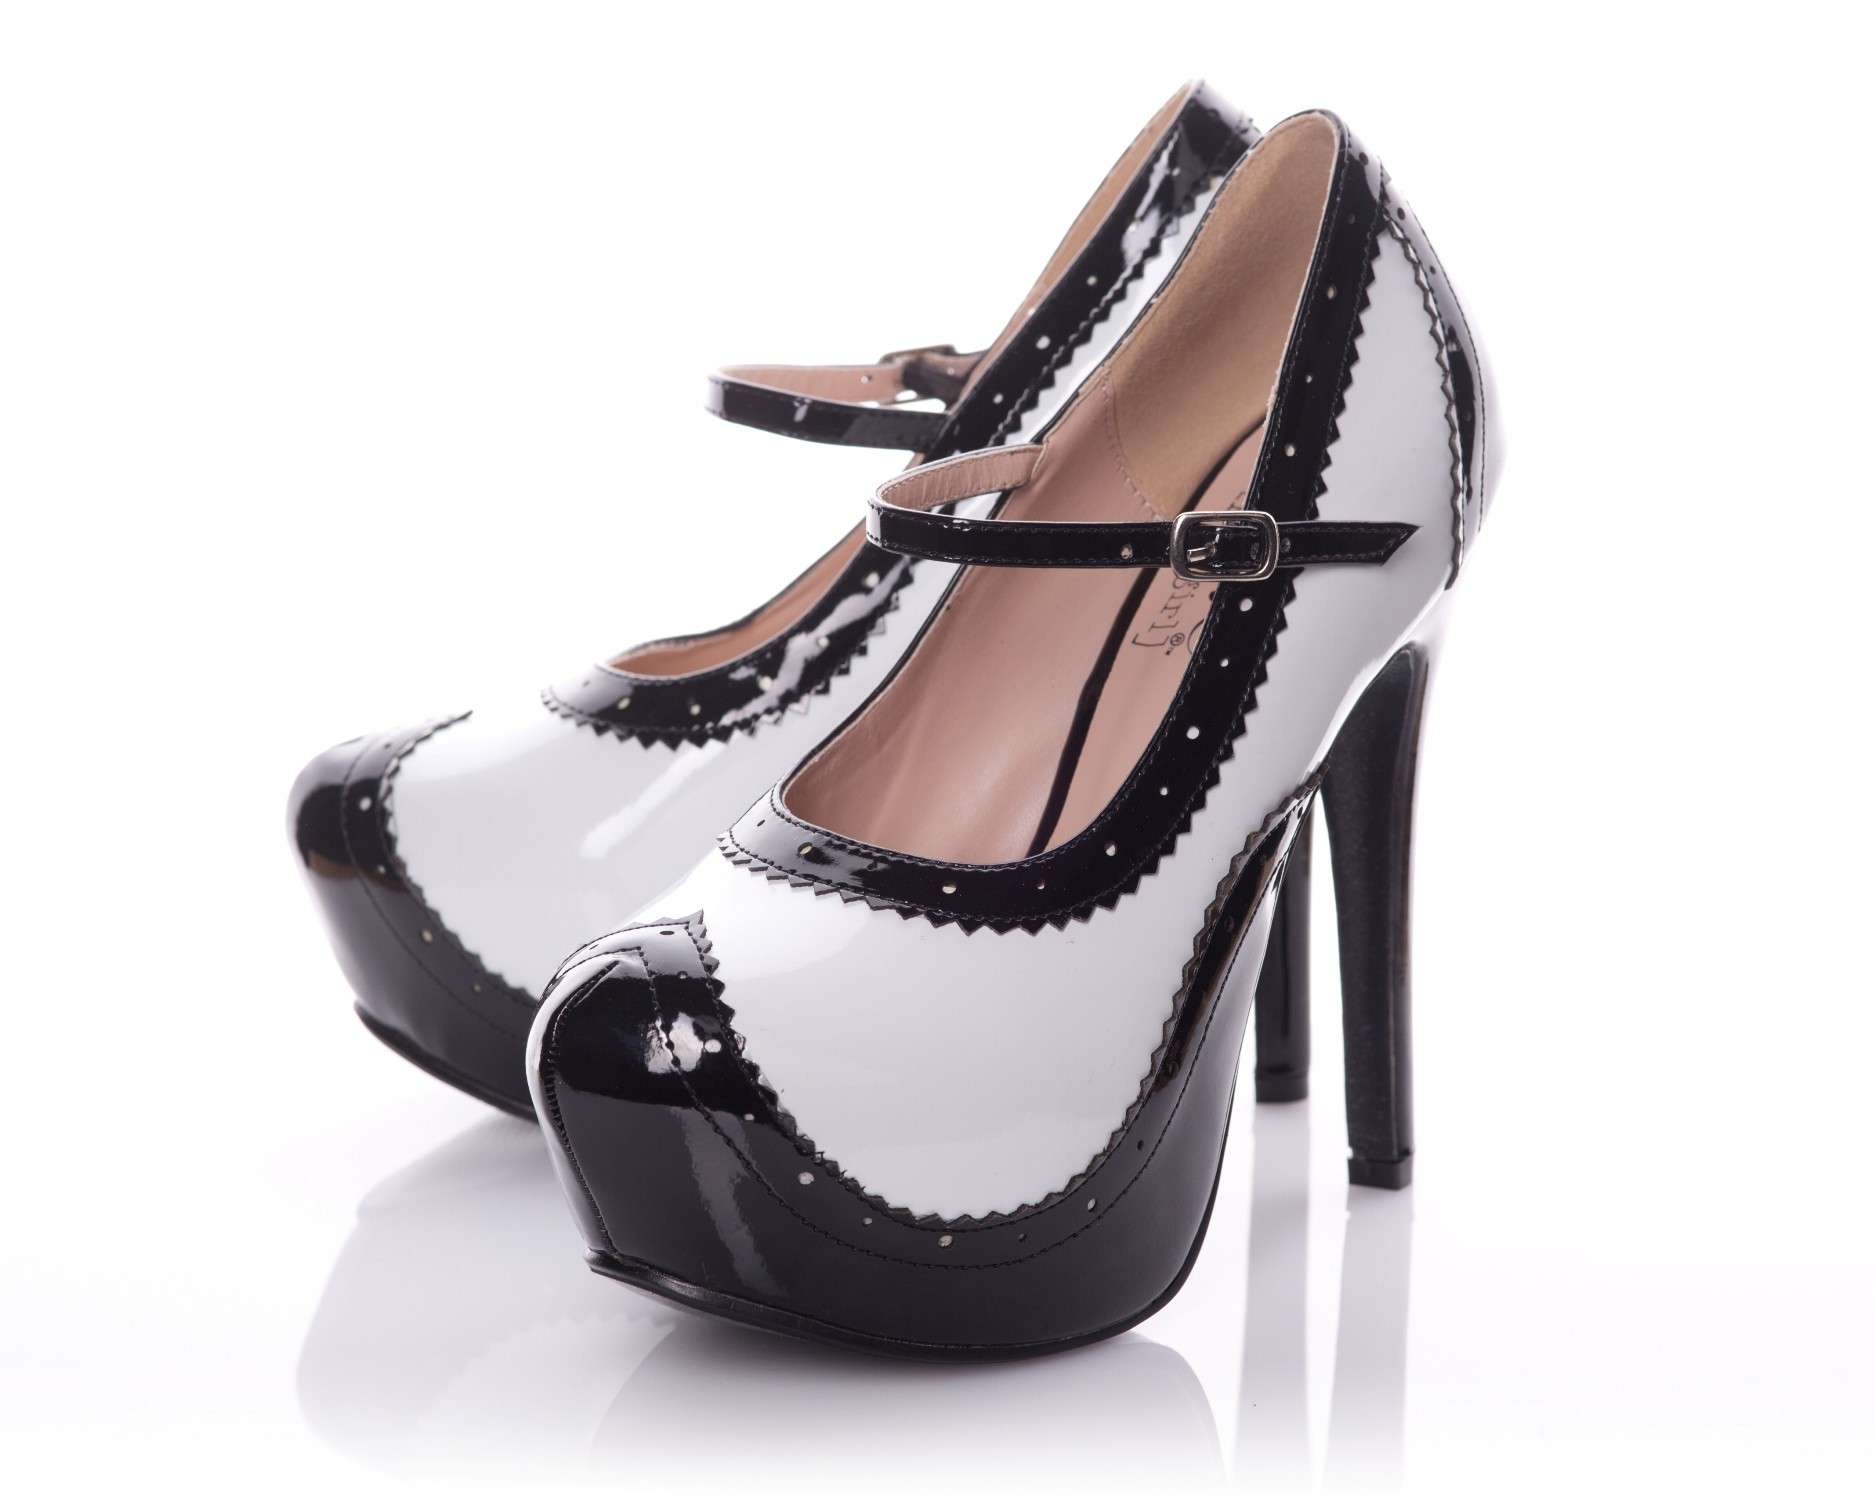 Playgirl Patent Rounded Toe Platform Pump In Black With White Contrast